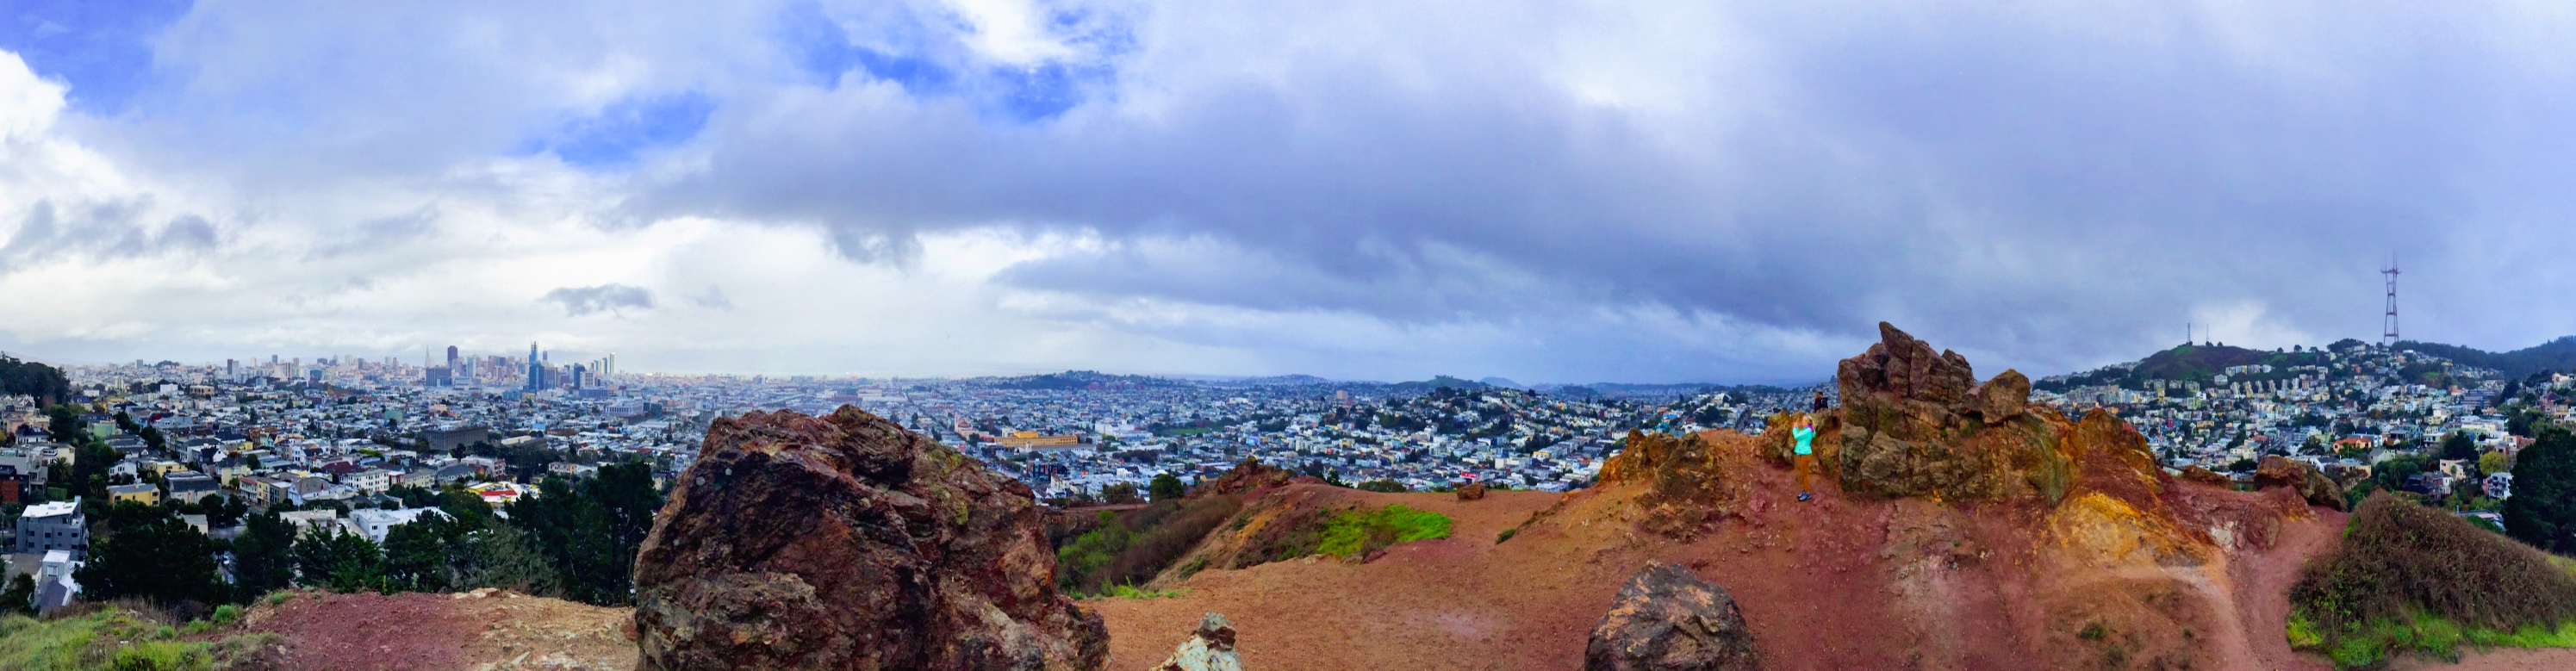 Corona Heights features unexpected views of San Francisco. - JIM BYERS PHOTO